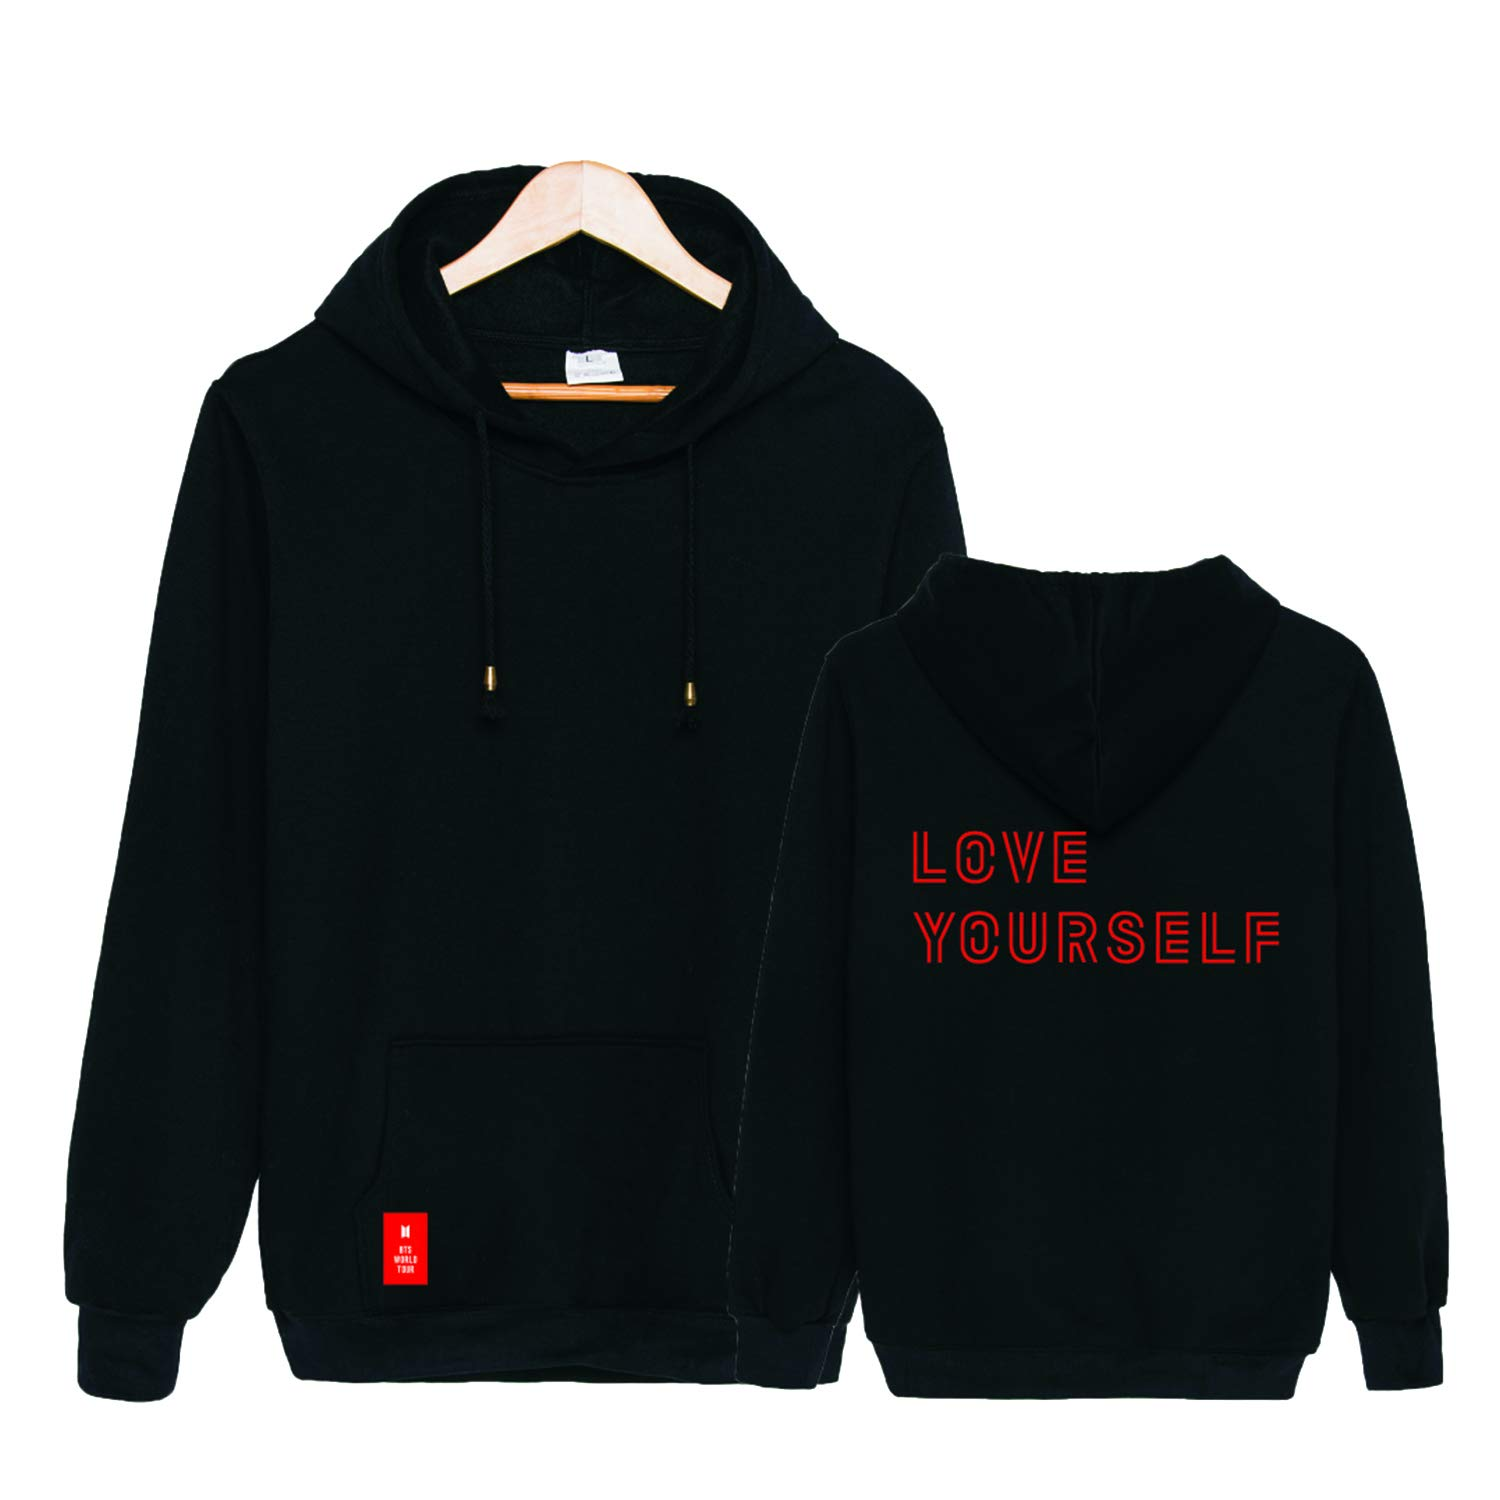 Xllife Kpop BTS Love Yourself World Tour Same Hoodie Suga V Jimin Jacket Sweater